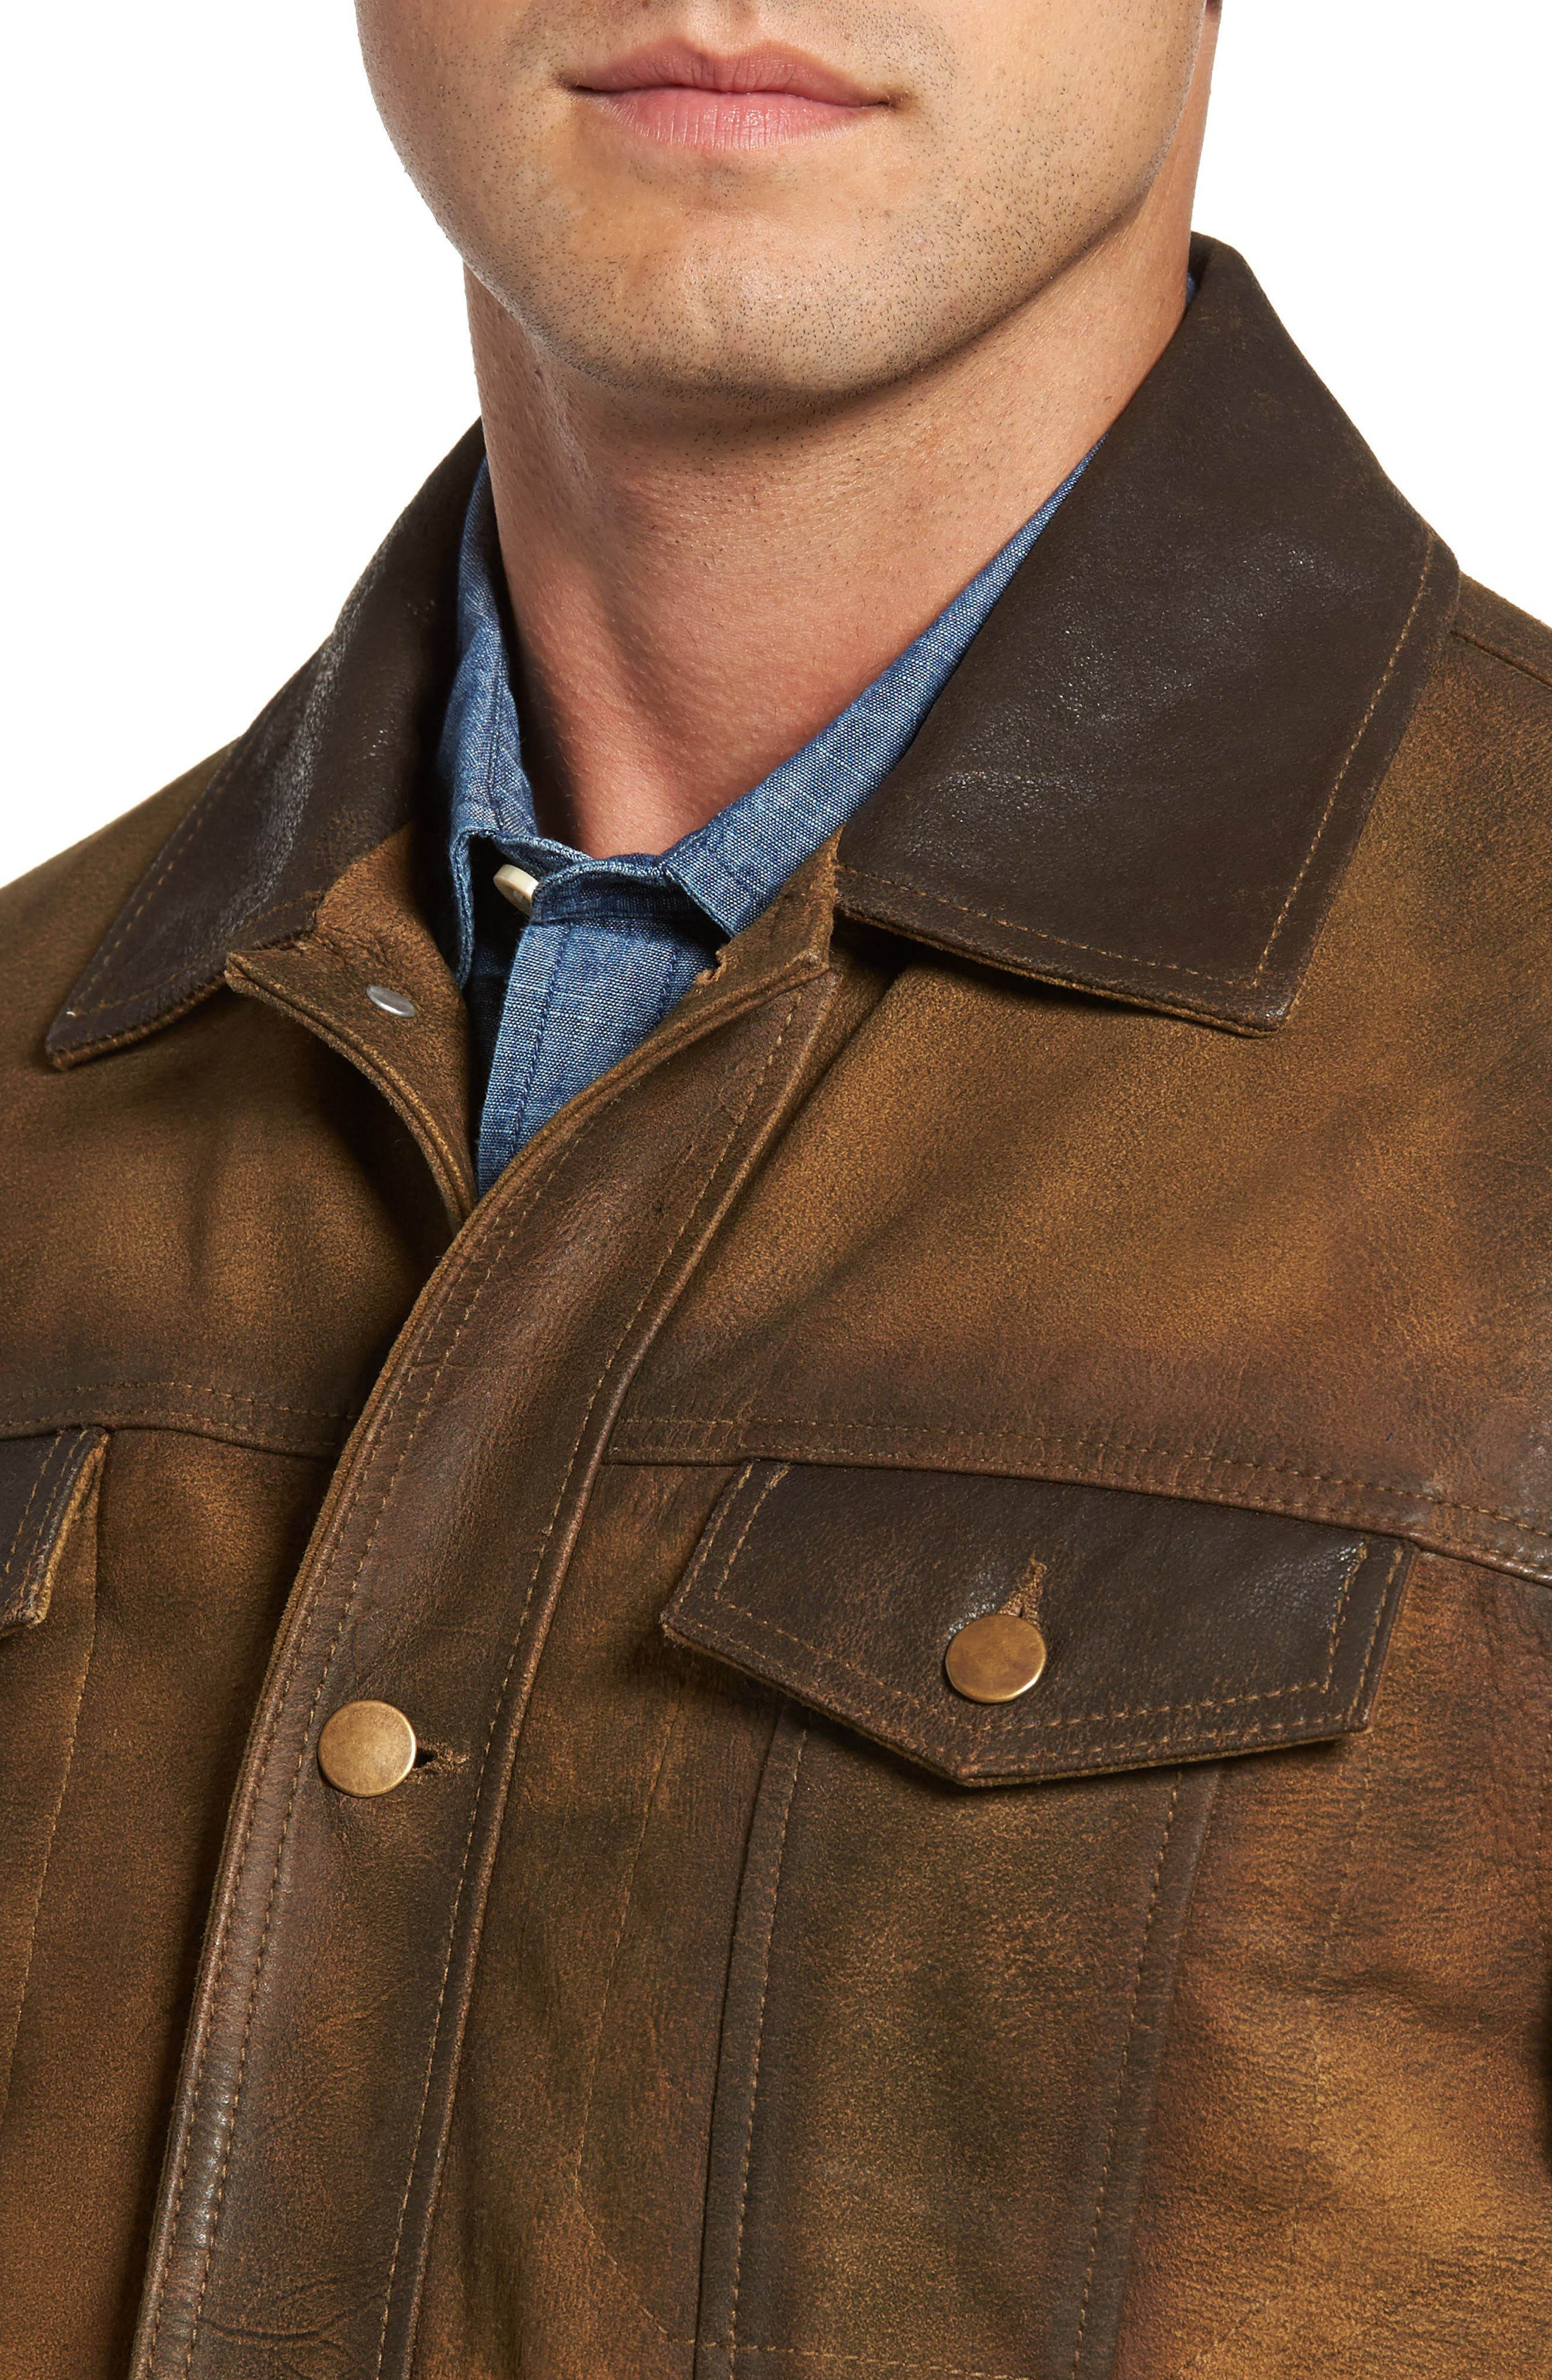 Distressed Leather Trucker Jacket,                             Alternate thumbnail 4, color,                             200